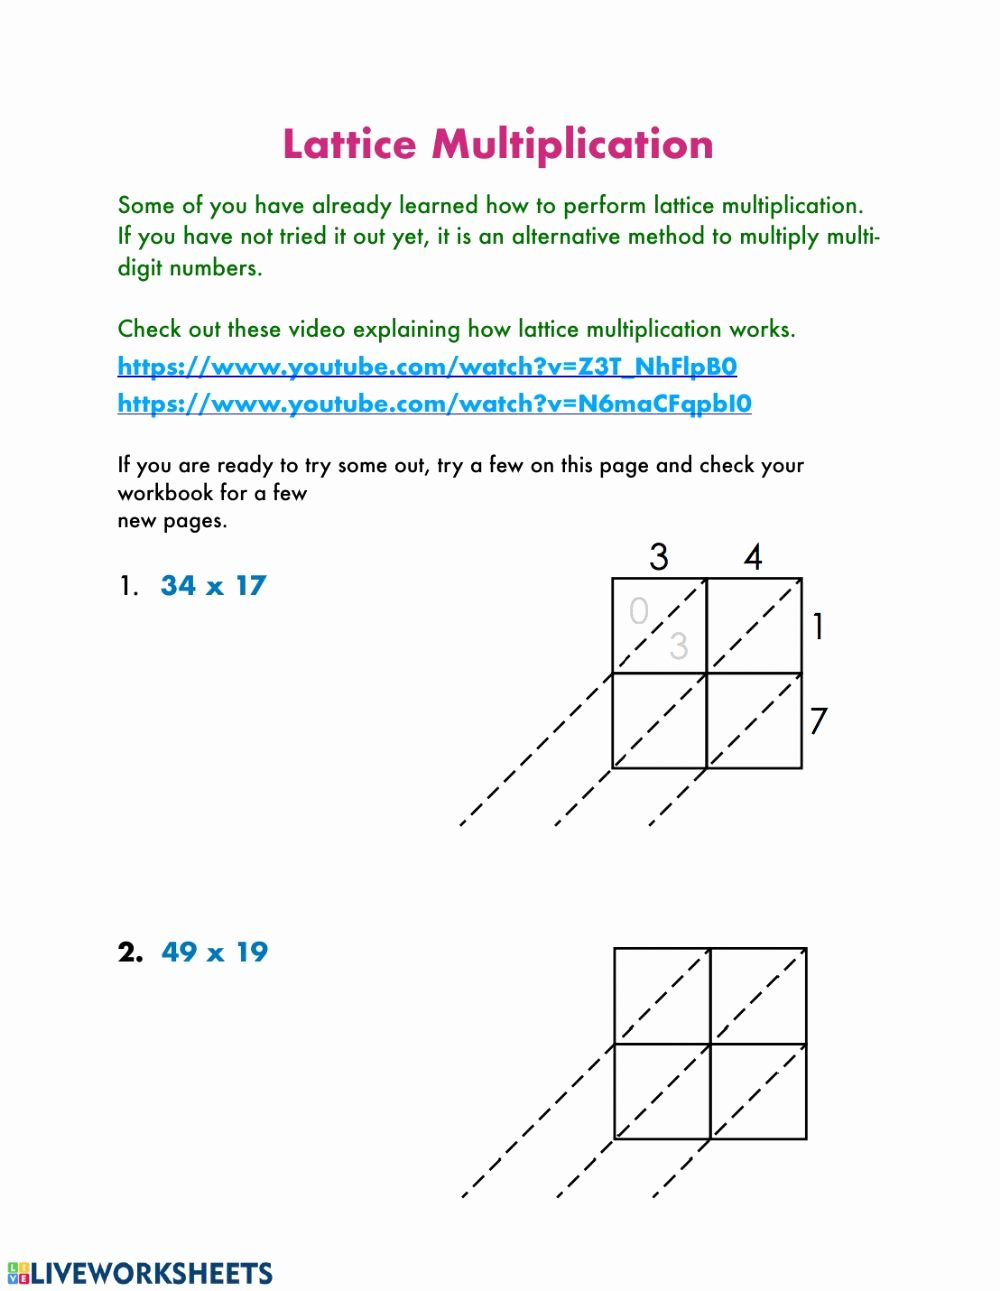 Lattice Method for Multiplication Worksheets Fresh Lattice Multiplication Multiplication Worksheet